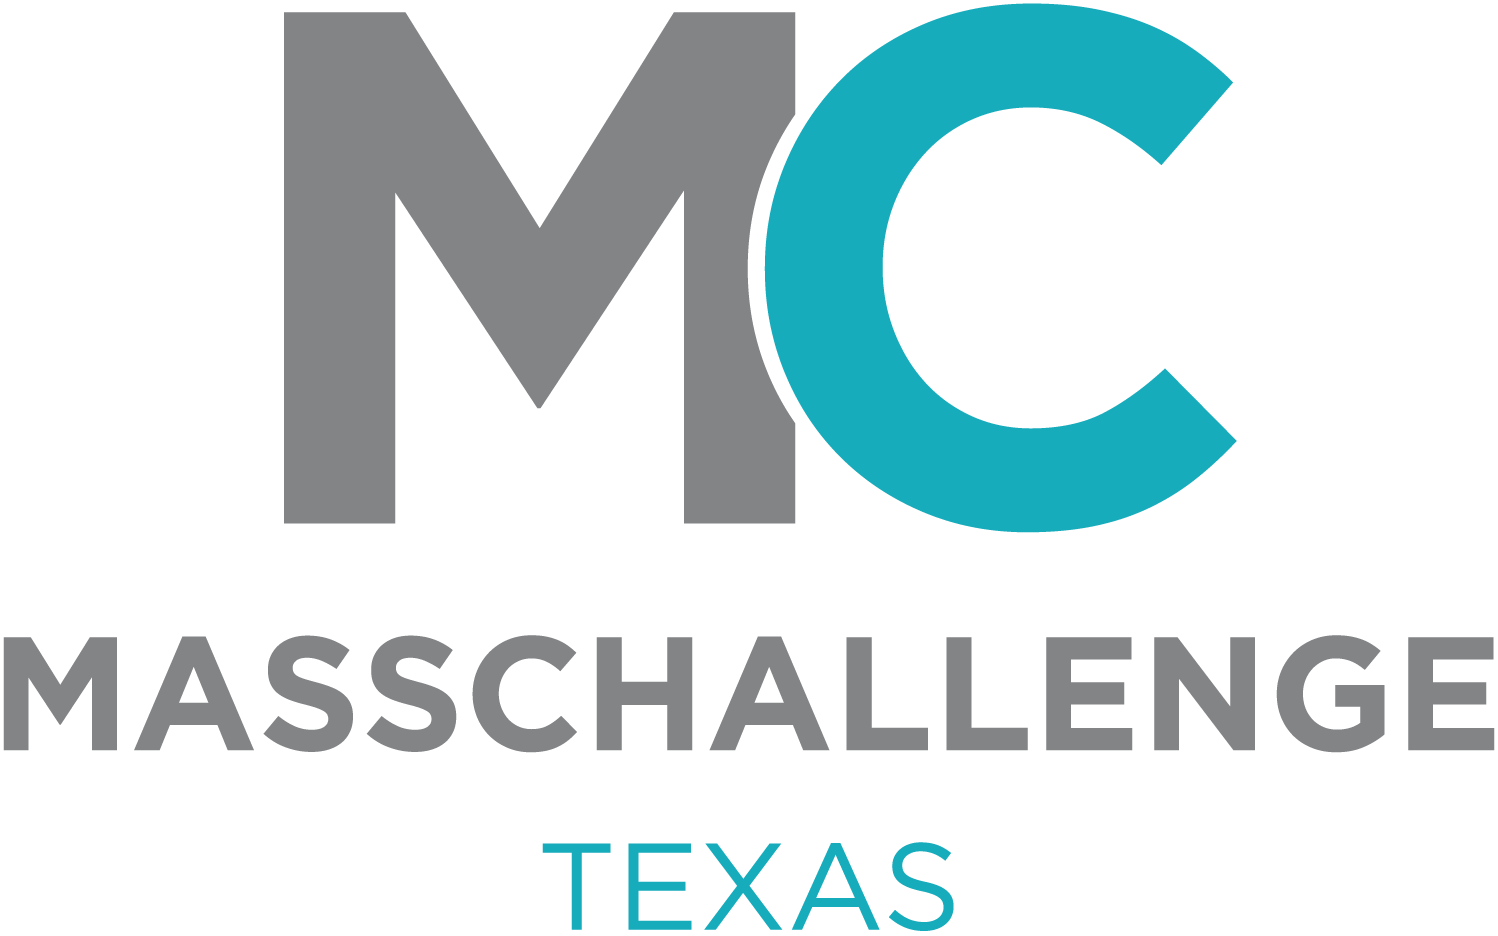 MassChallenge Texas